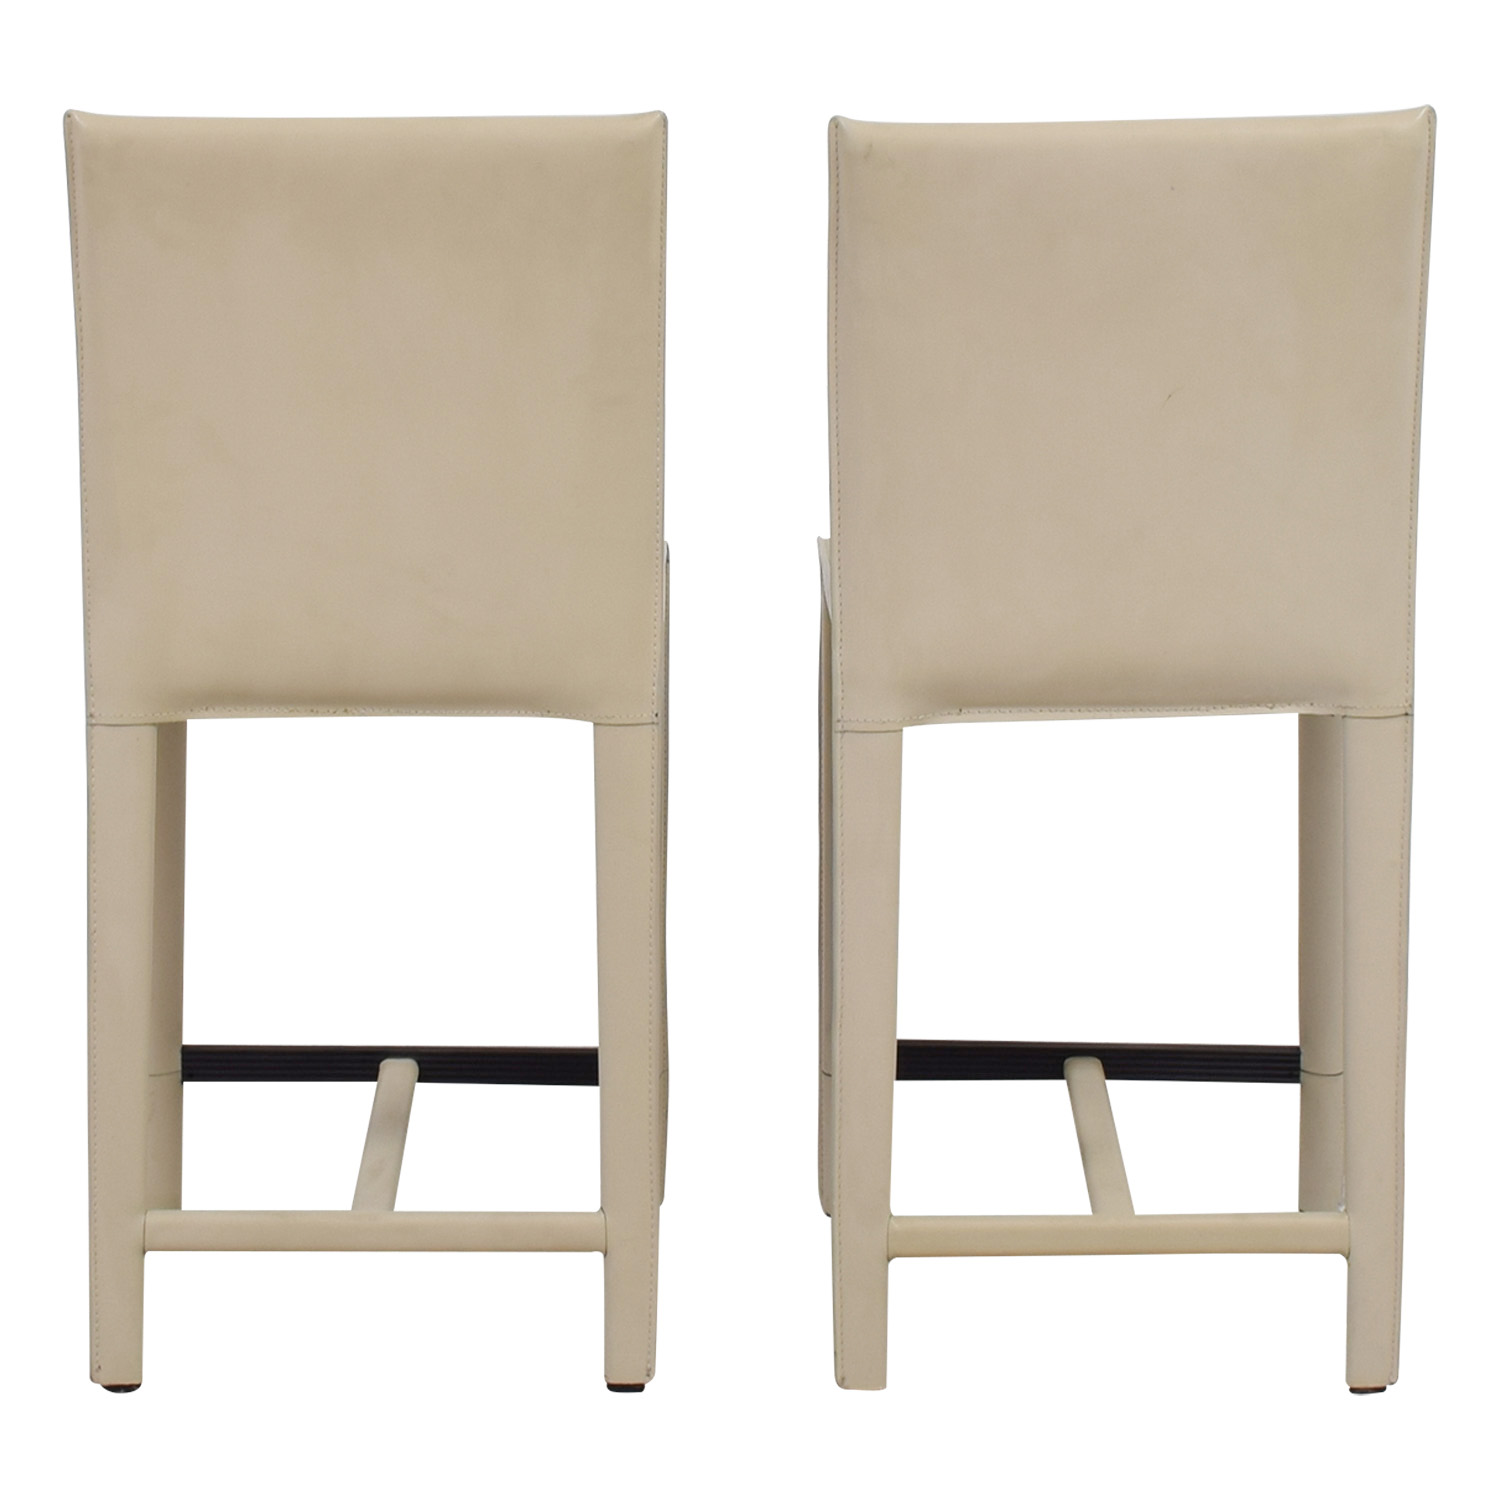 Crate & Barrel Crate & Barrel Folio Cream Leather Counter Stools used